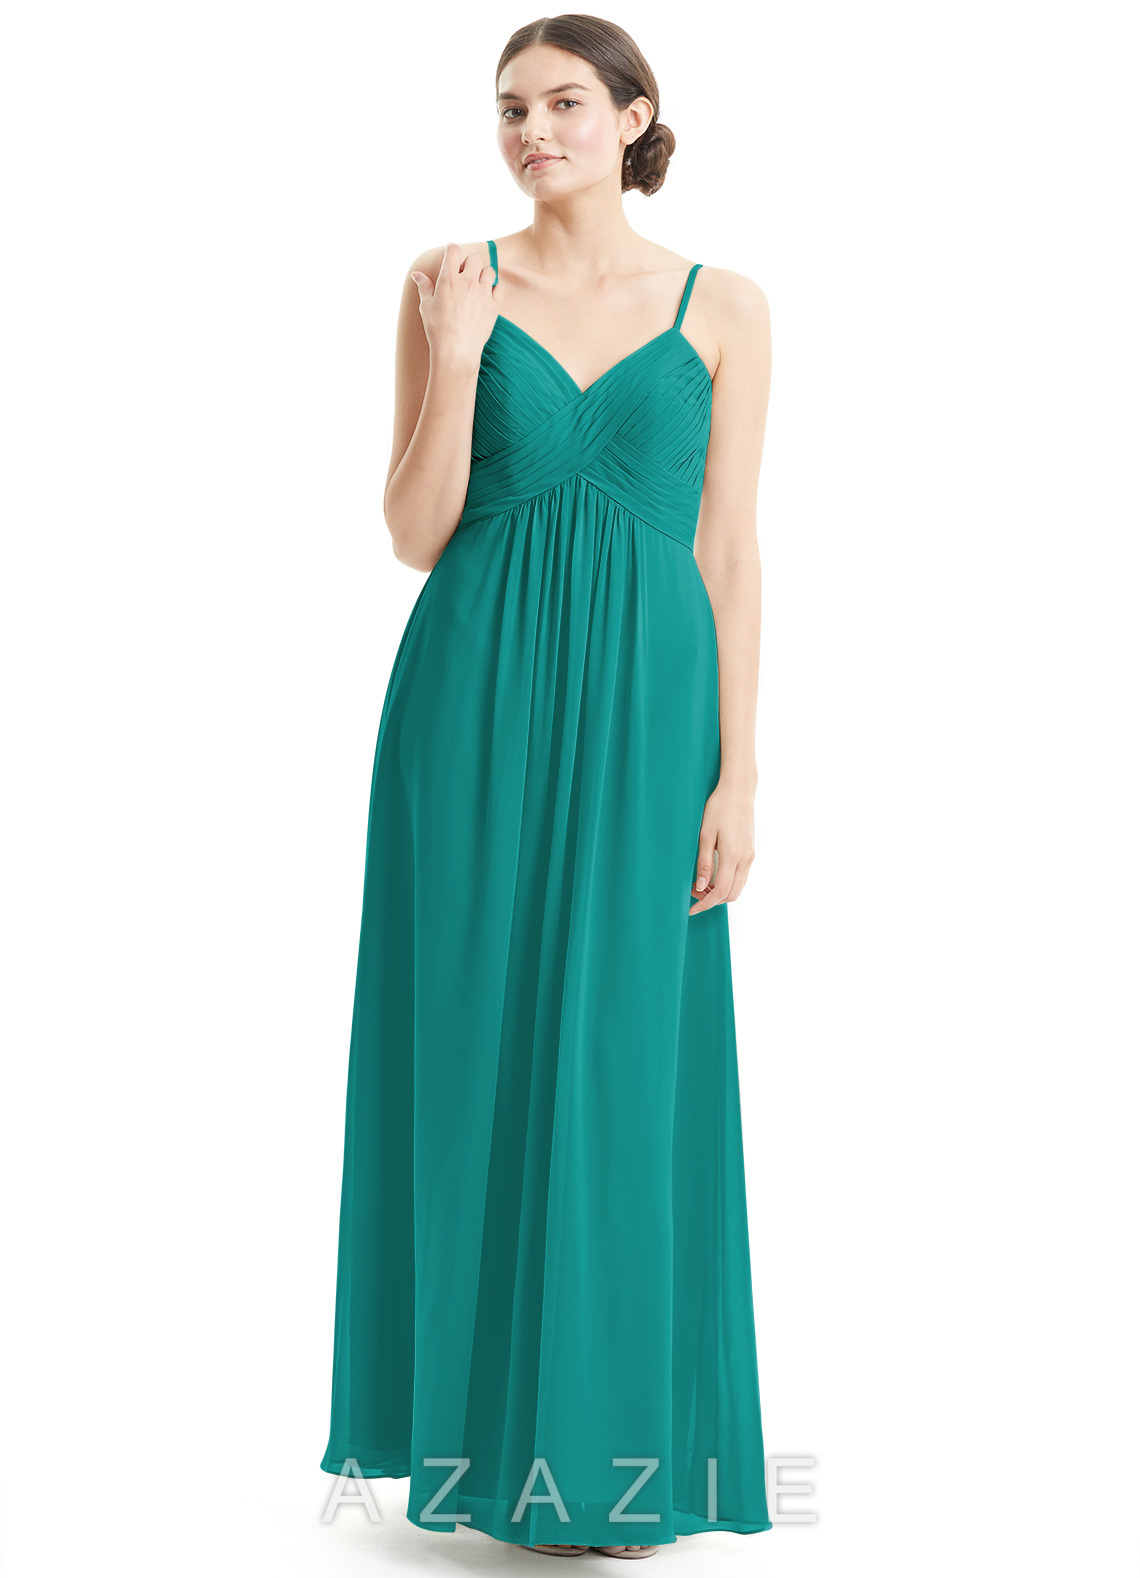 Azazie shannon bridesmaid dress azazie color jungle green ombrellifo Choice Image